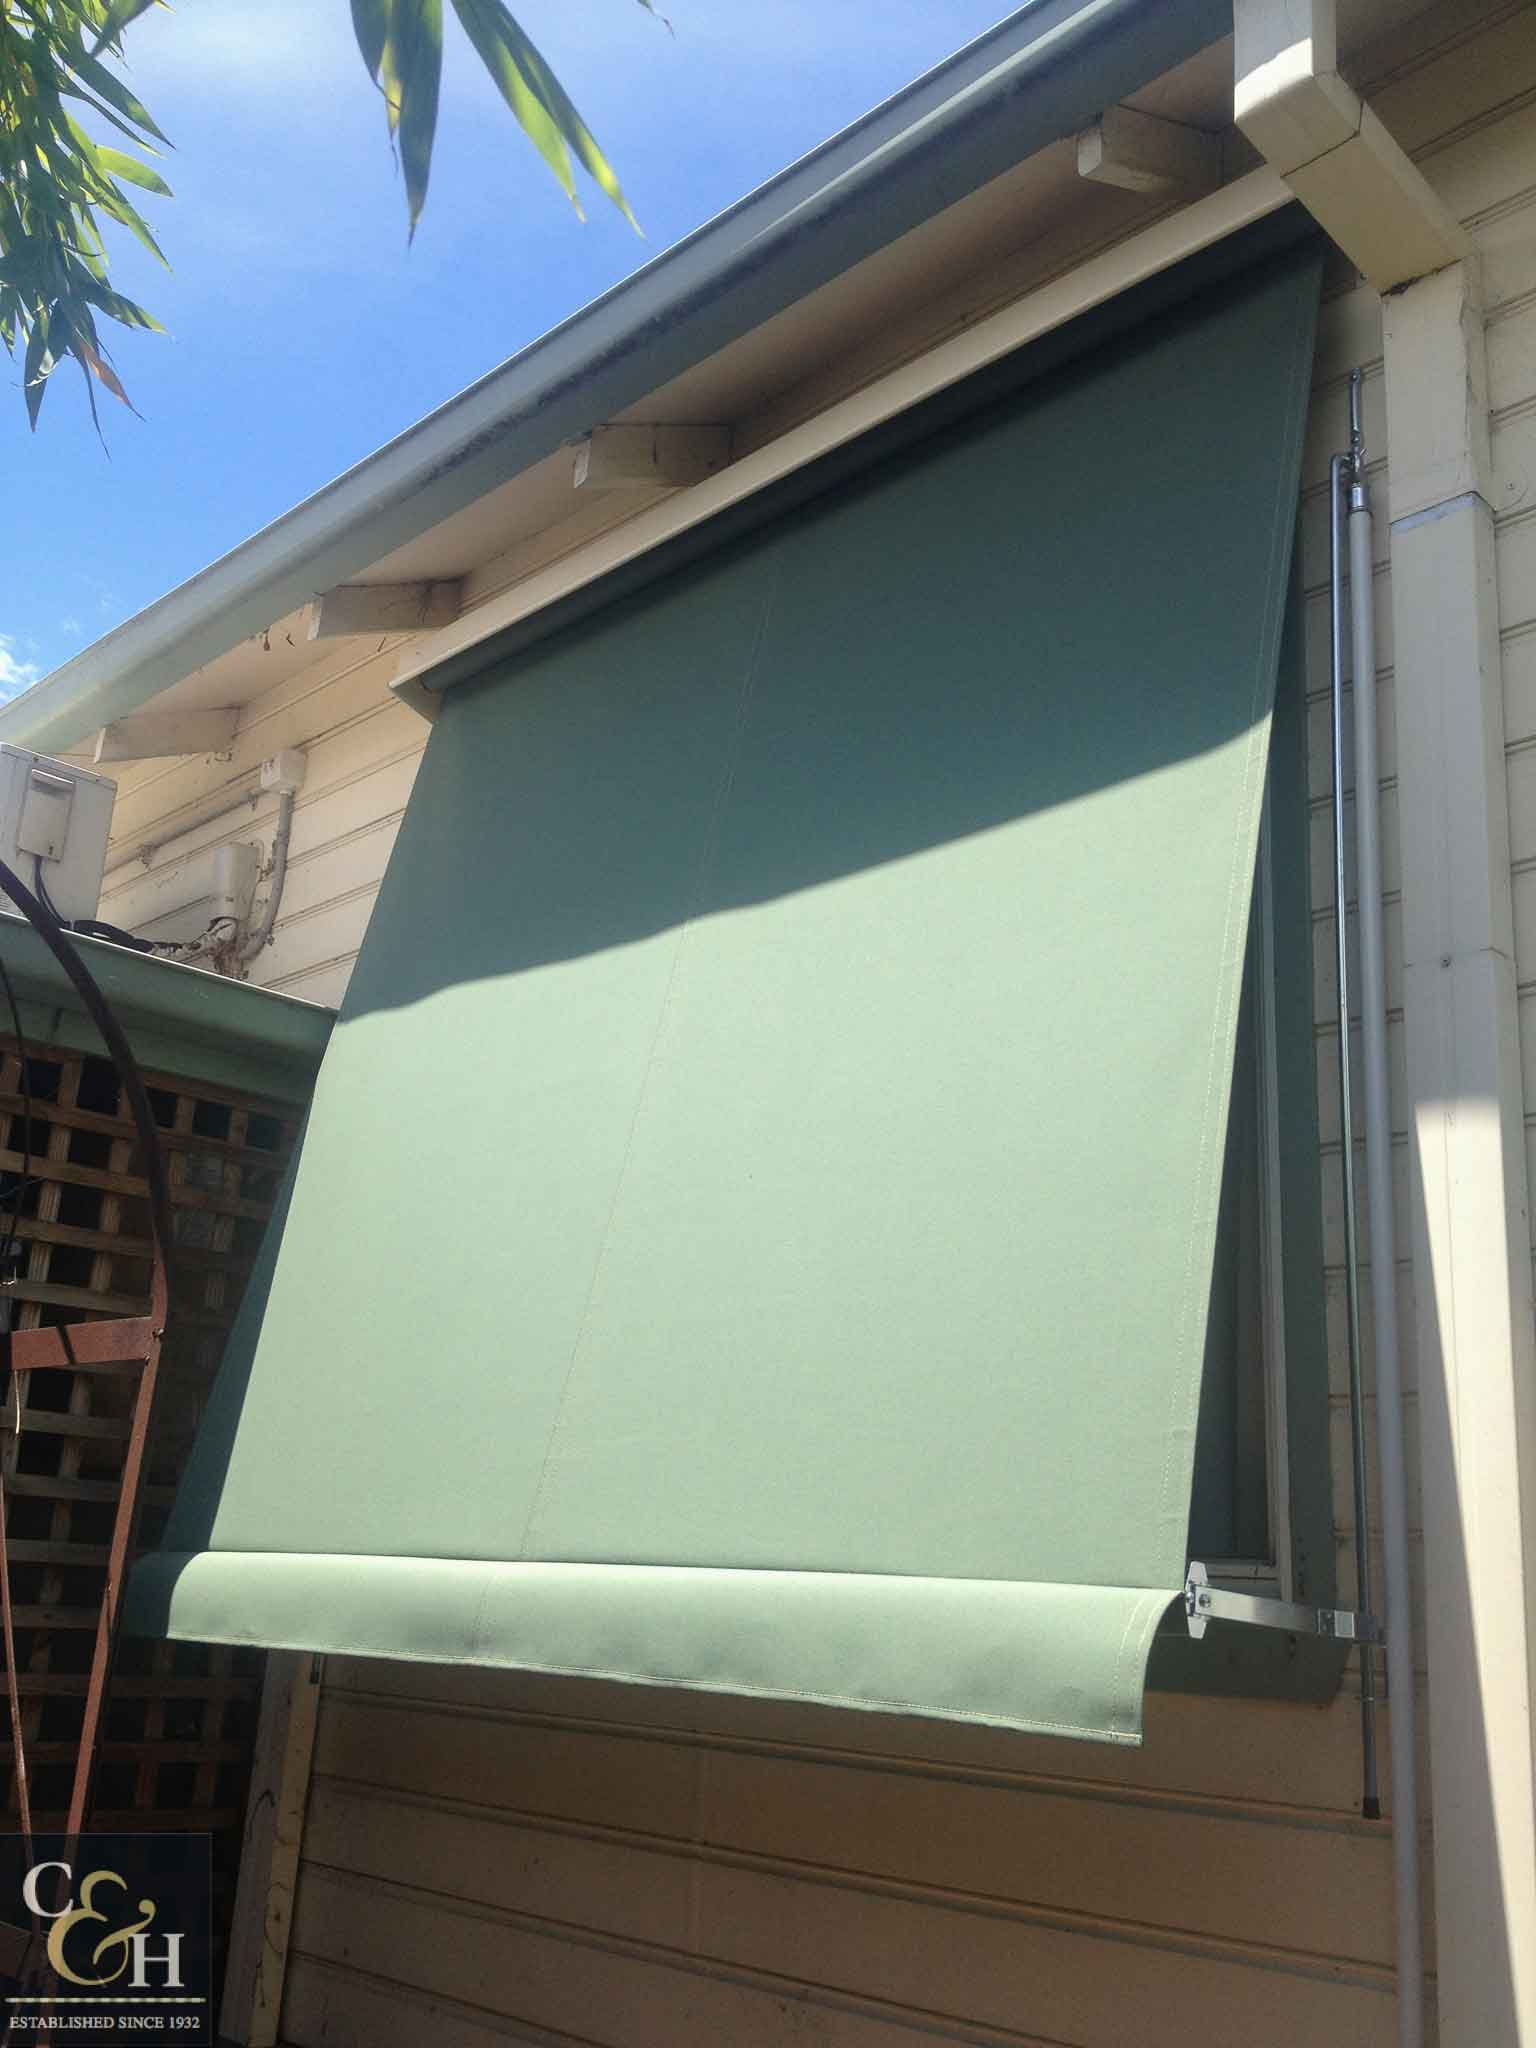 Awnings Canvas Awnings Carbolite Awnings Shopfront Awnings Melbourne